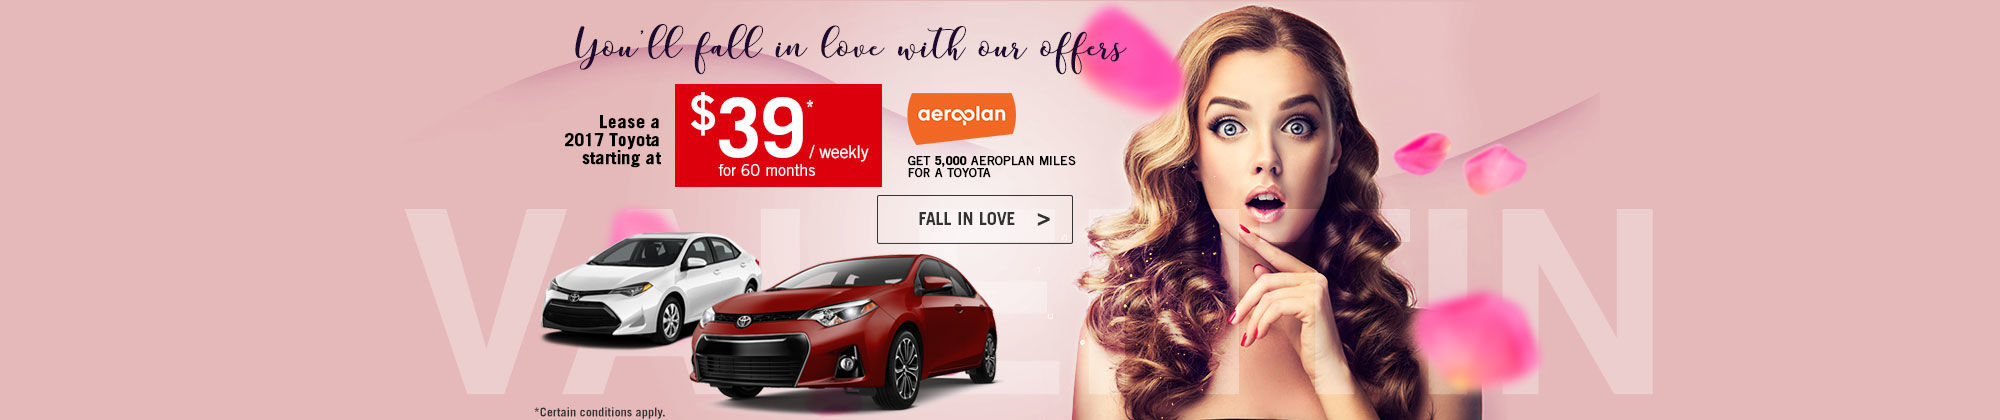 You'll fall in love with our offers-Toyota